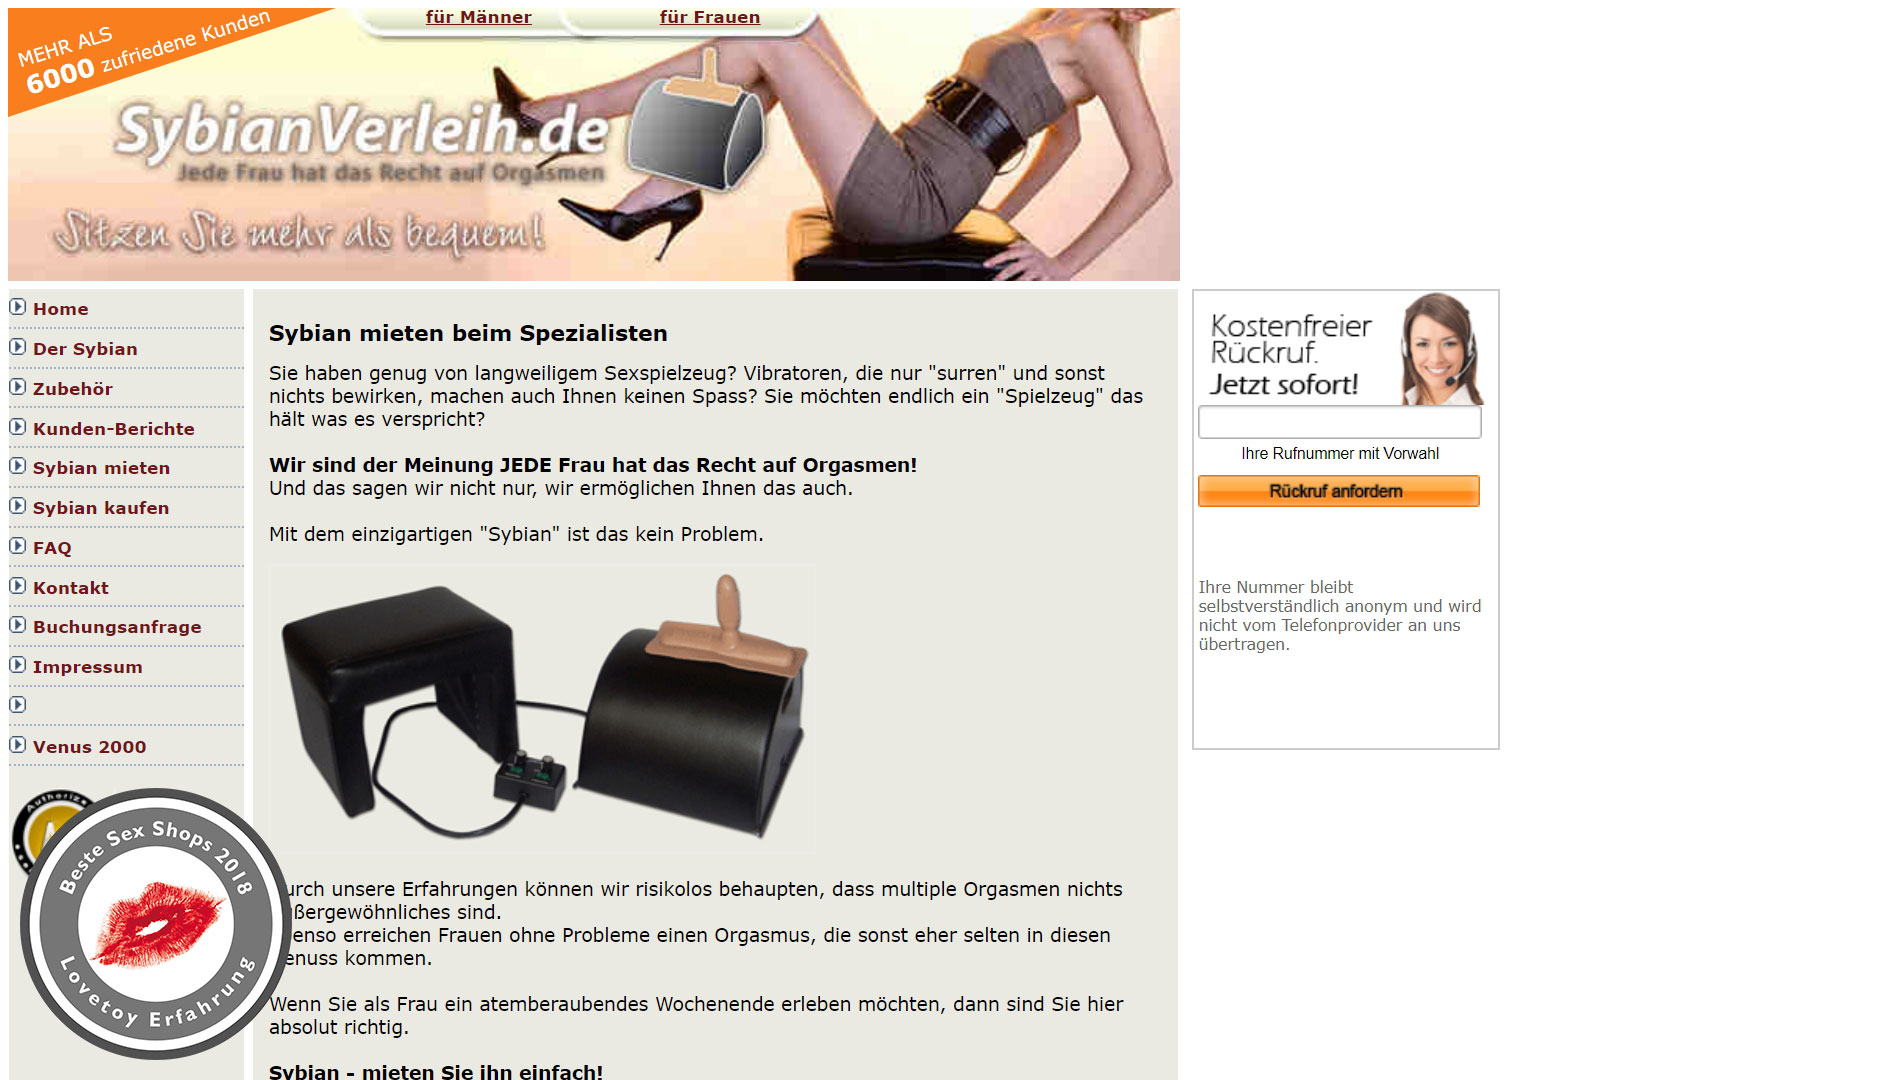 sybian sex toy aphrodisierende mittel